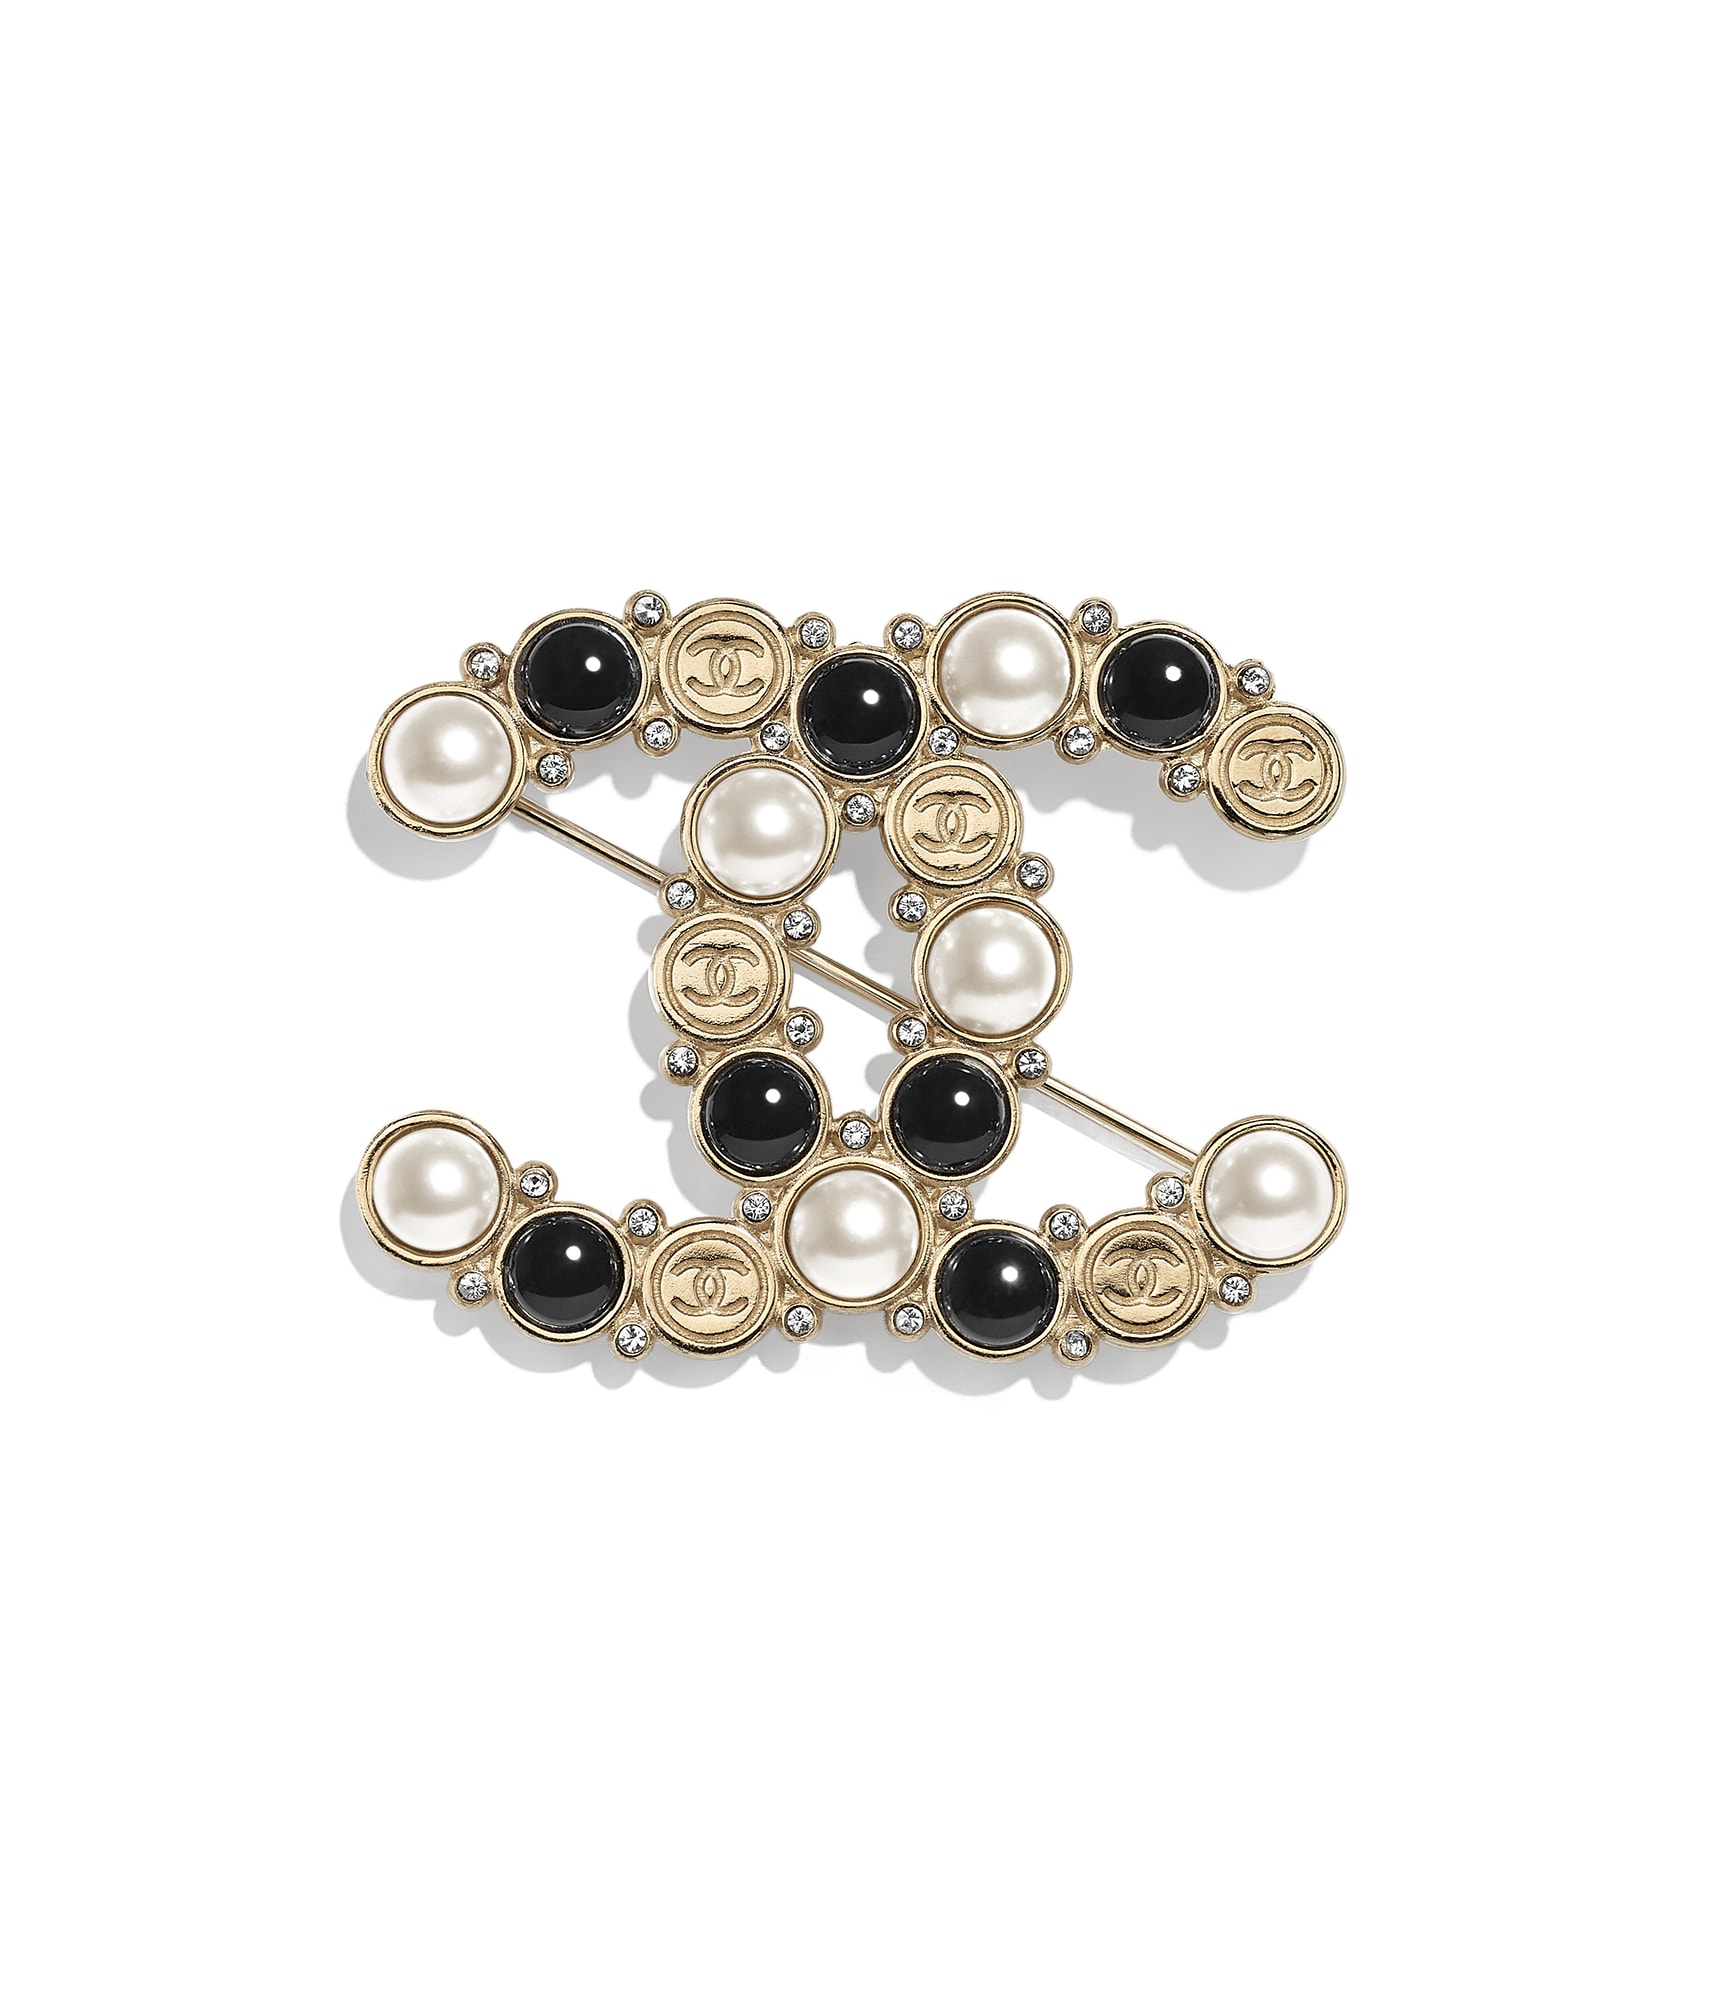 3caf45b5d Brooches - Costume Jewelry - CHANEL